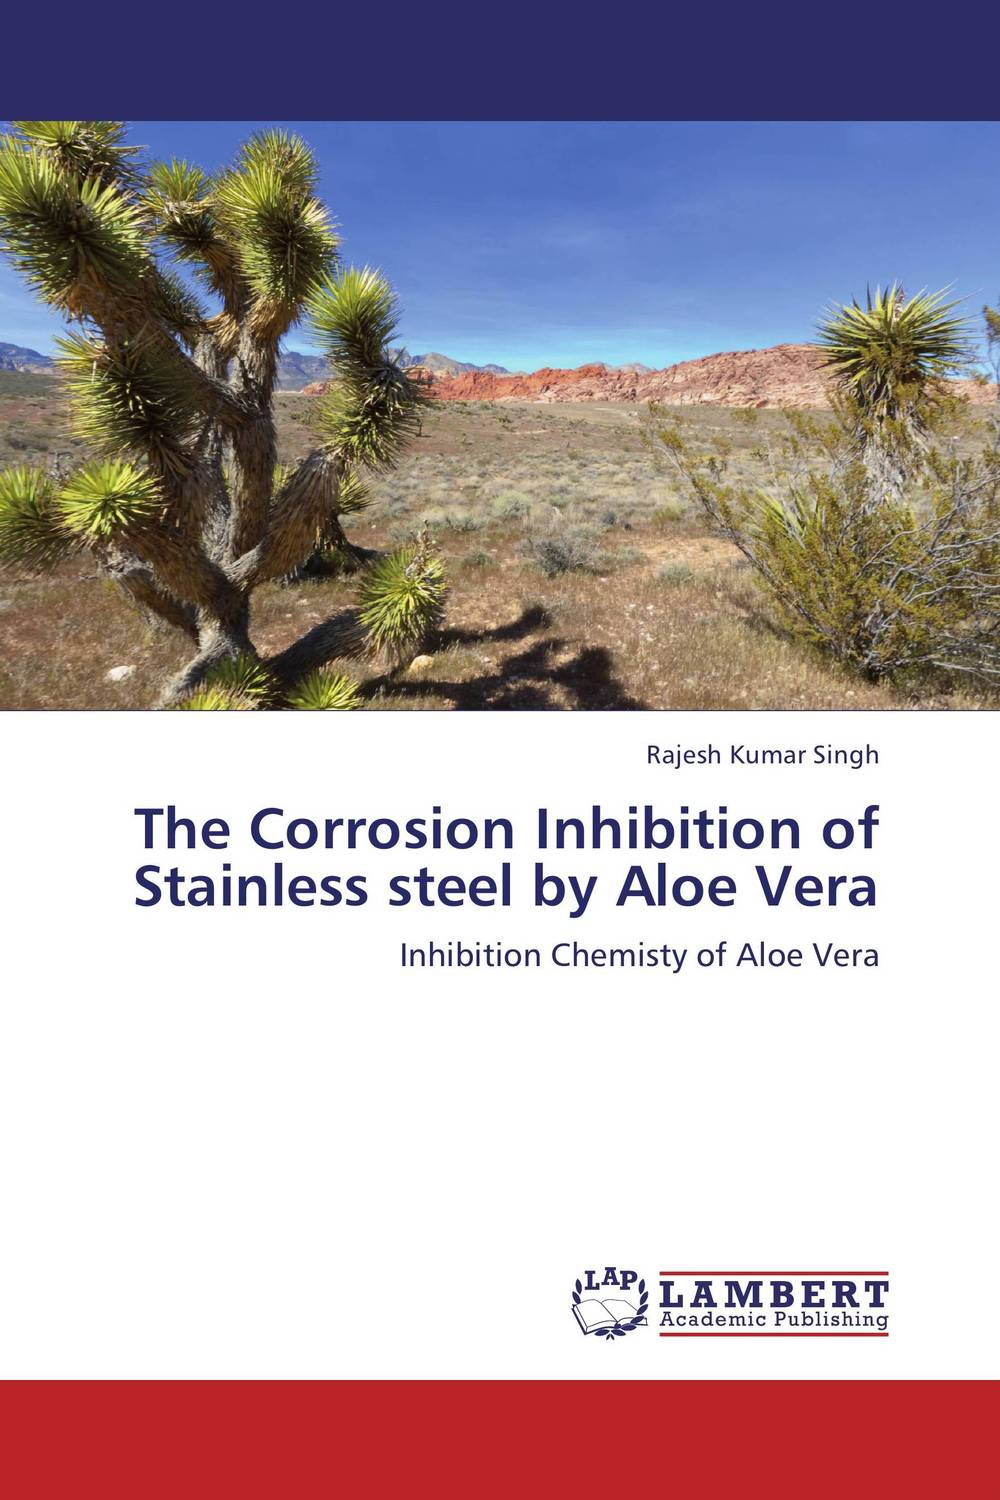 The Corrosion Inhibition of Stainless steel by Aloe Vera